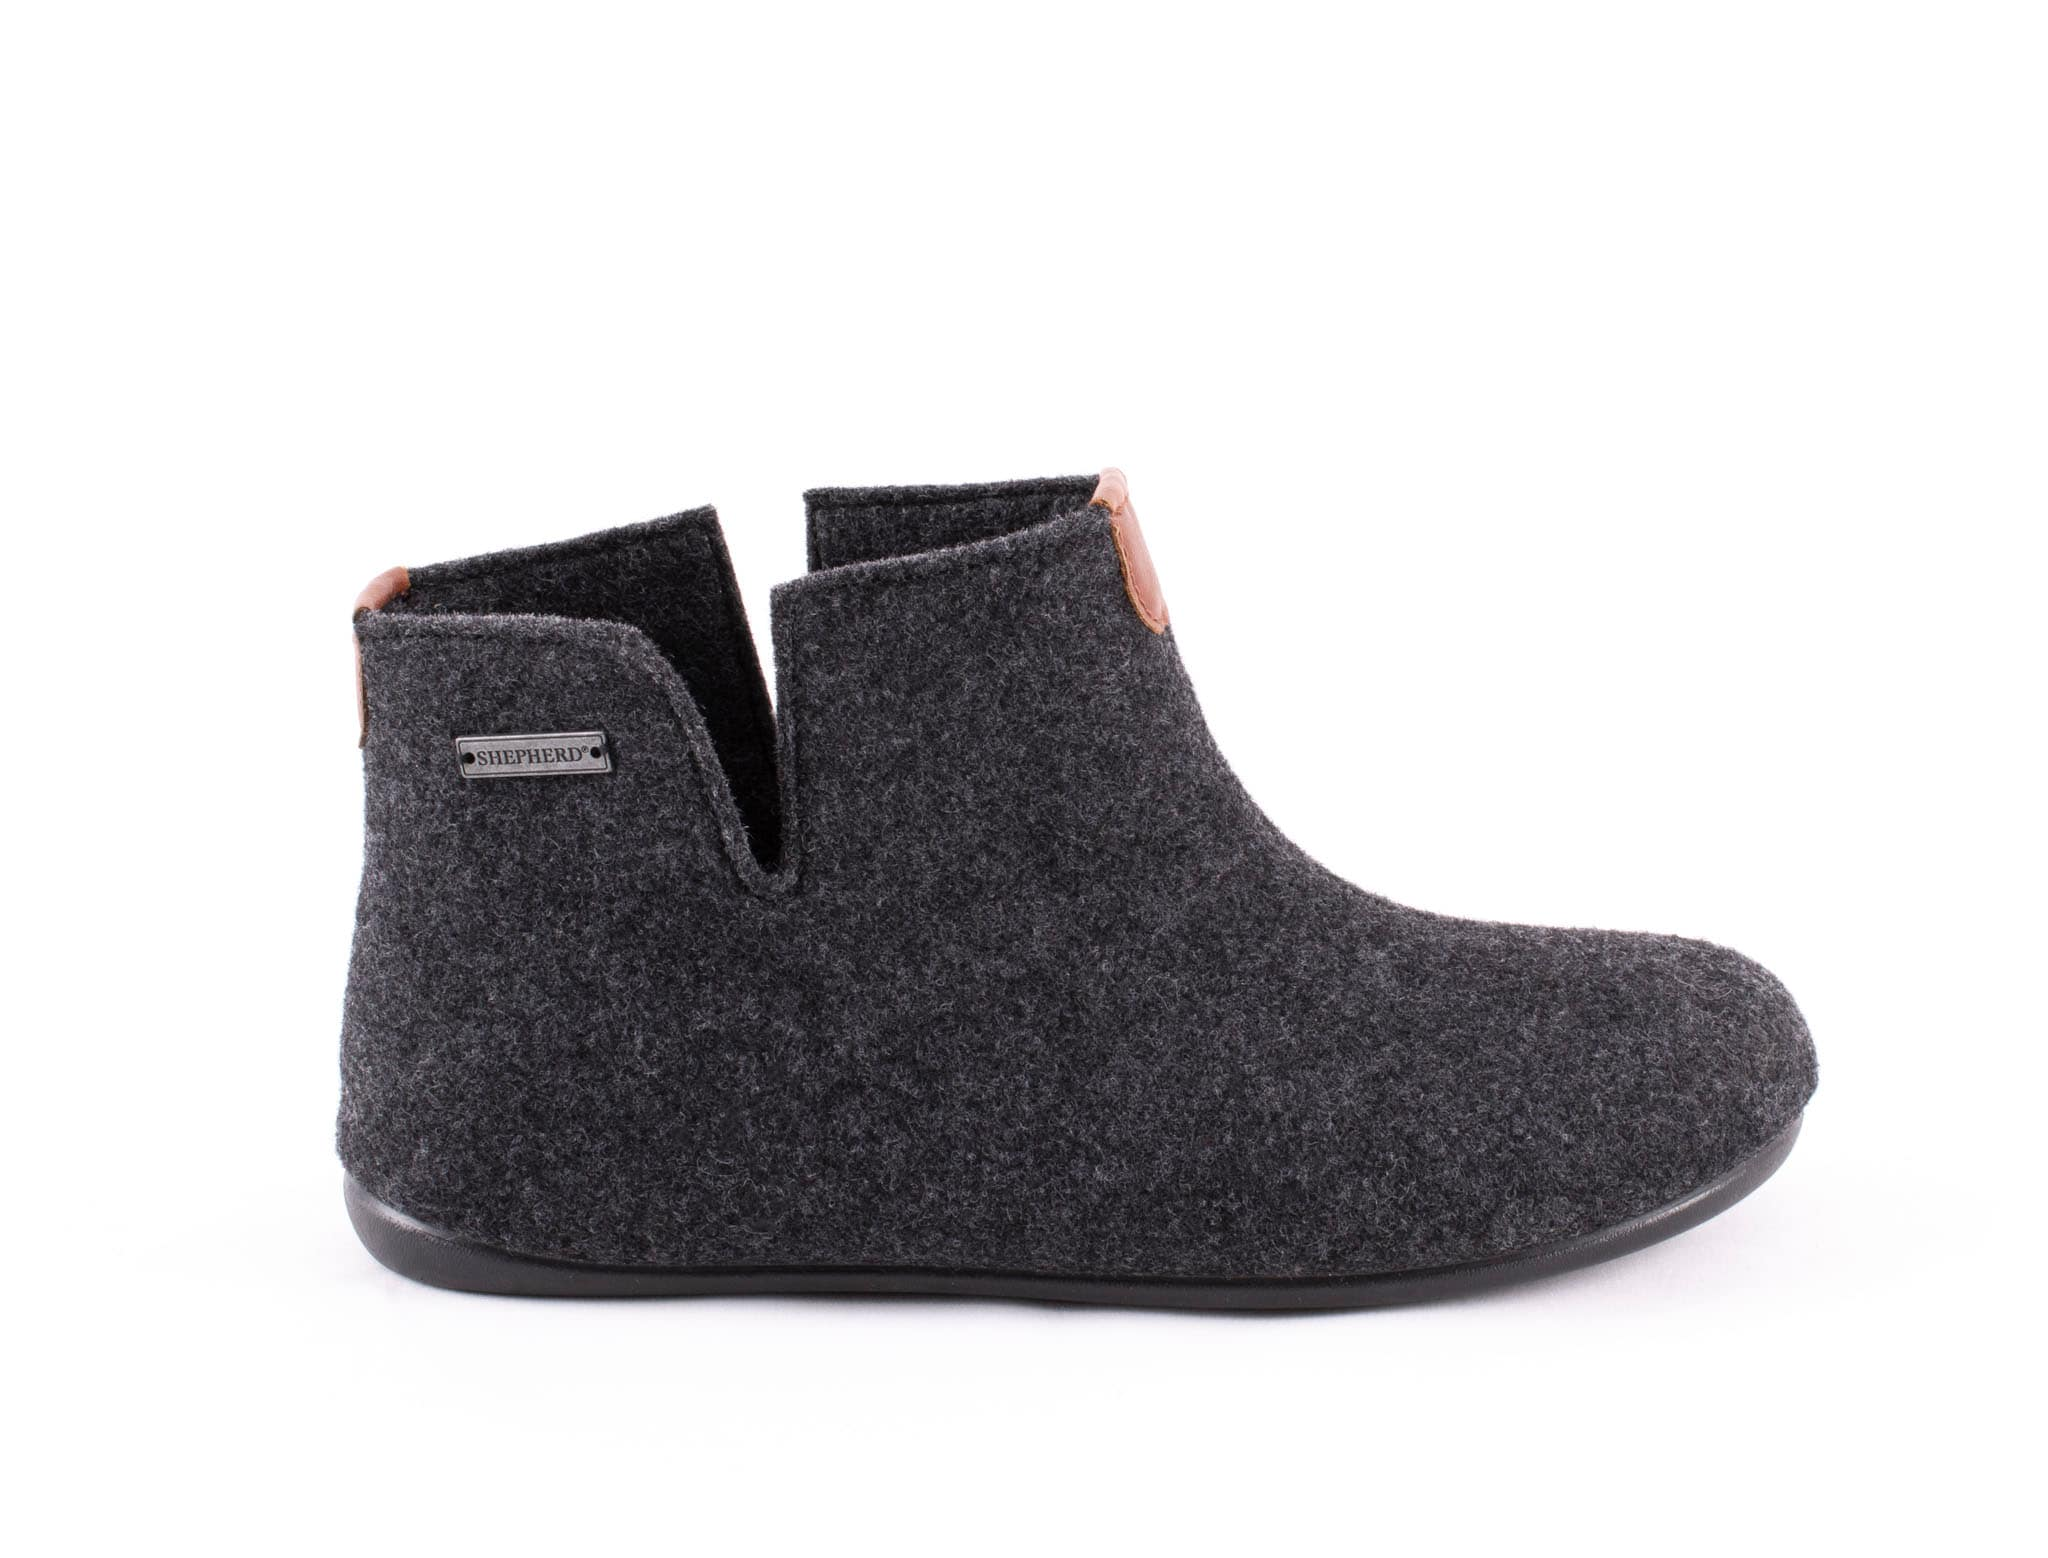 Shepherd Ester wool slippers